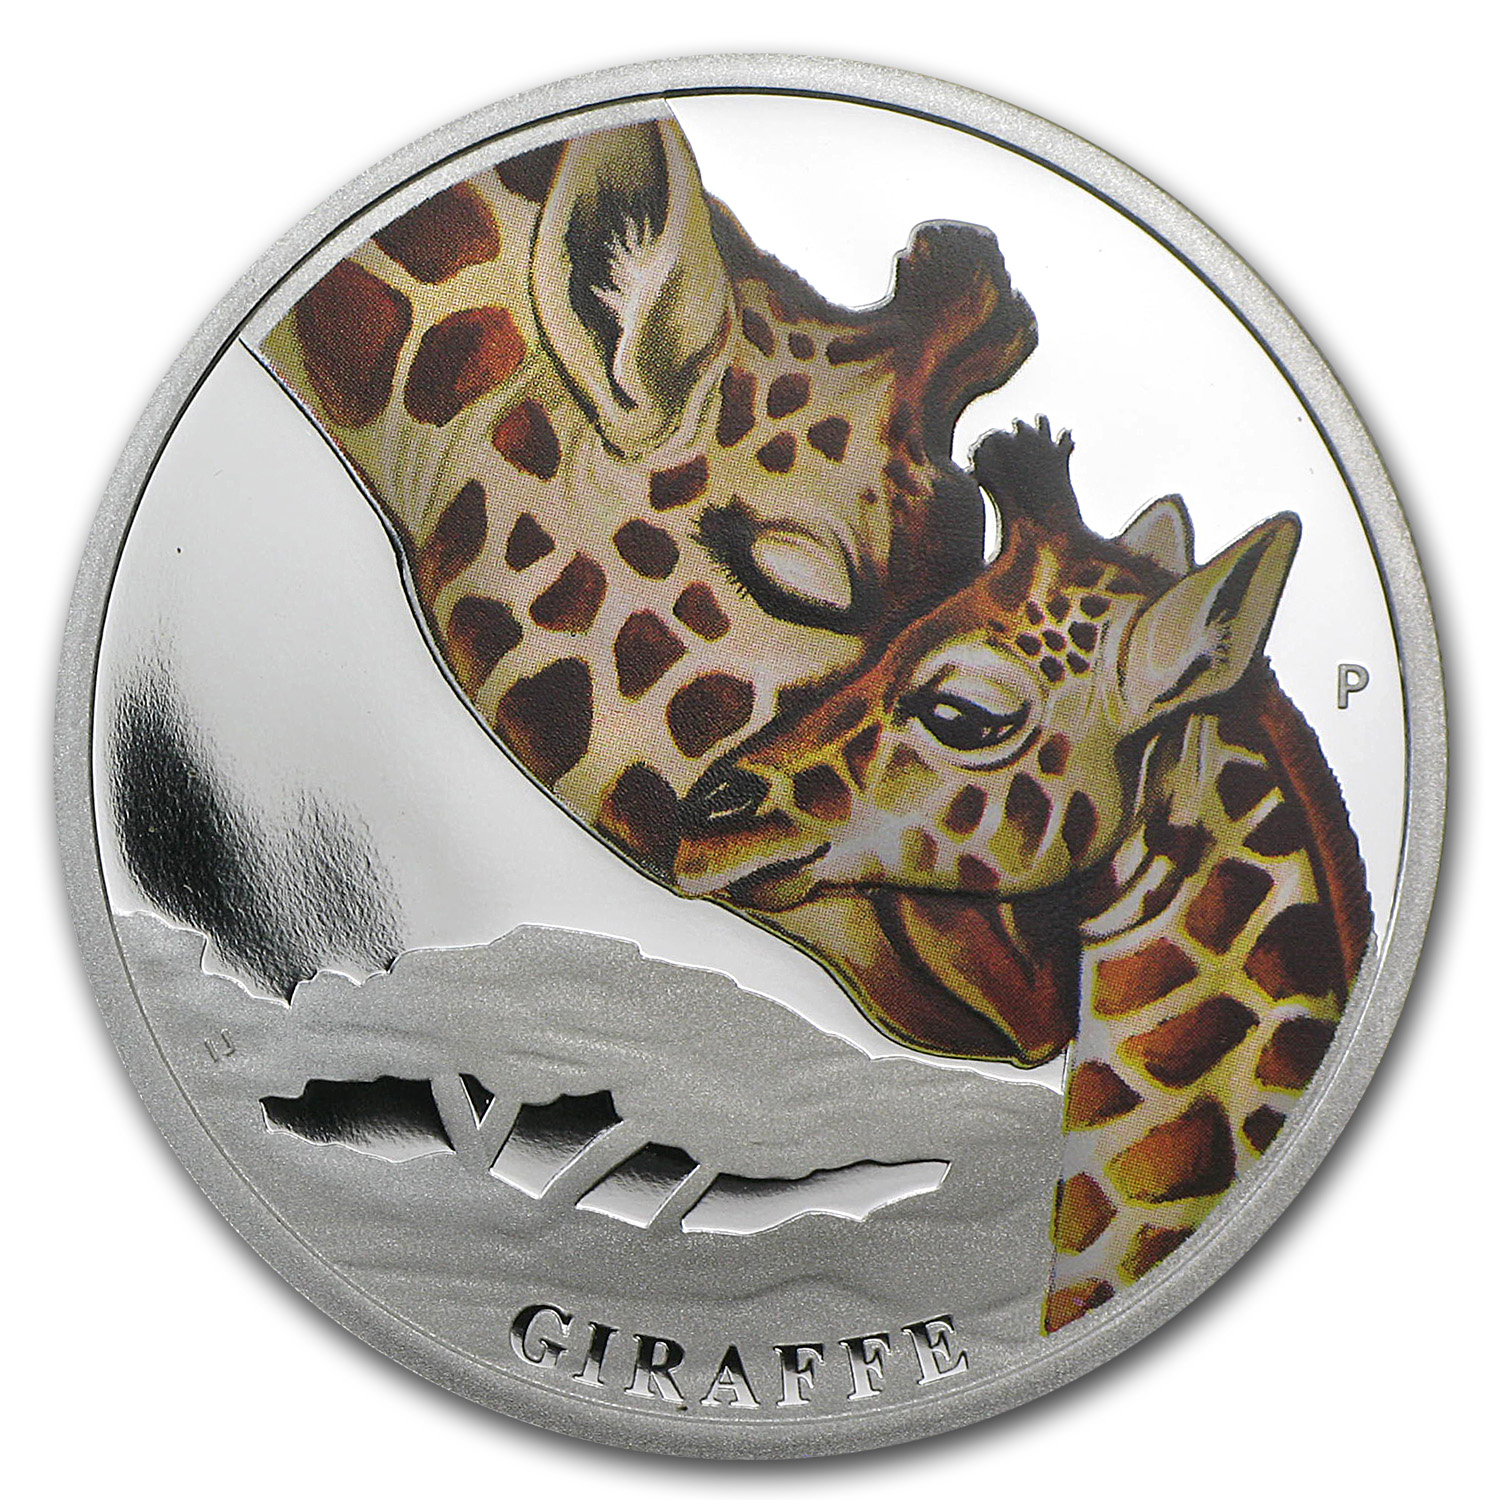 2014 1/2 oz Proof Silver Australian Mother's Love - Giraffe